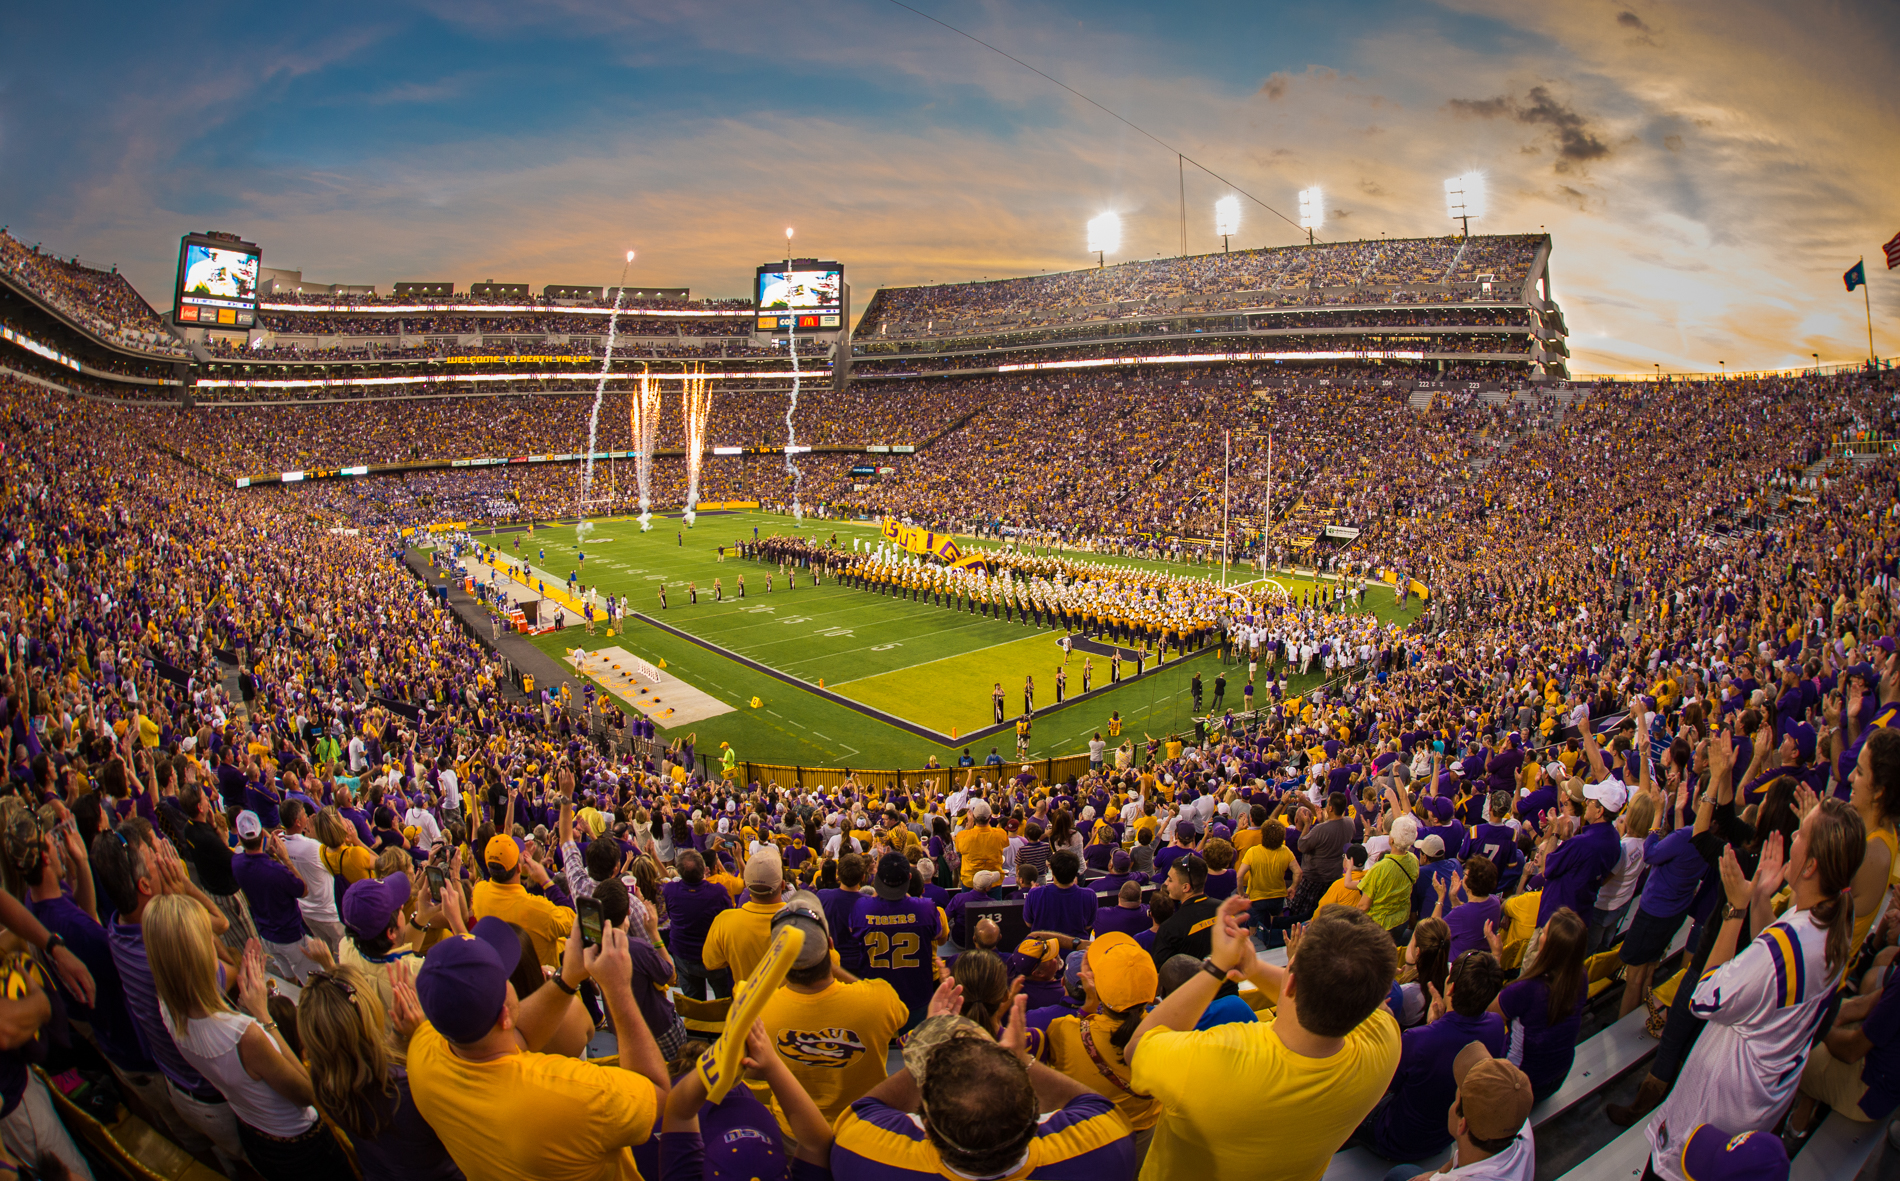 The LSU Experience